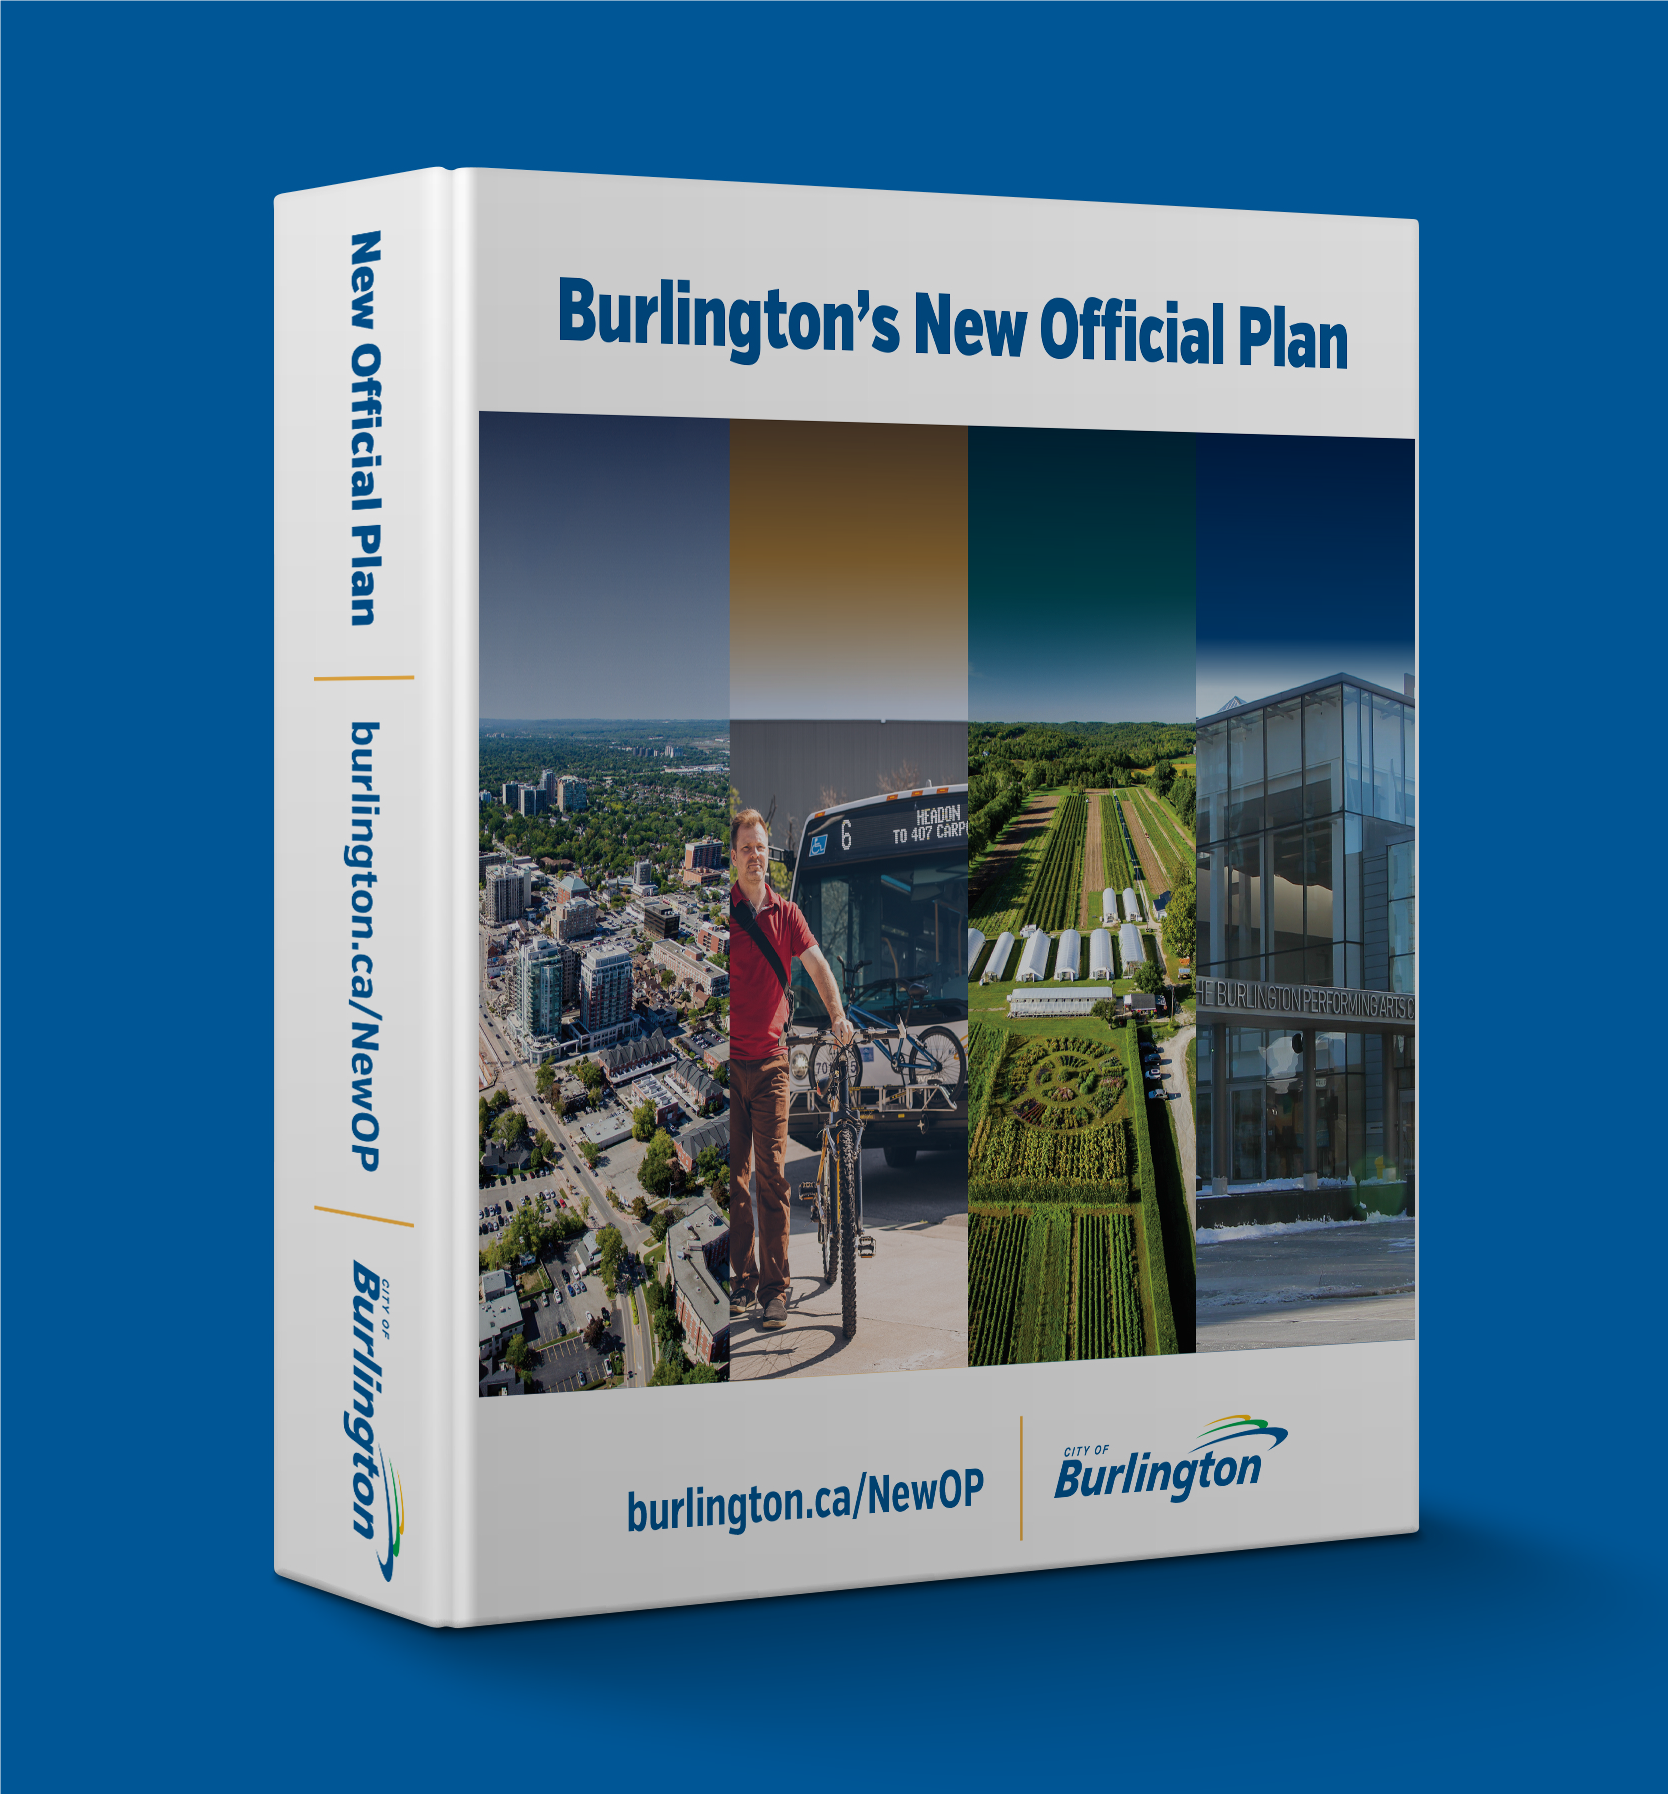 Halton Region approves new Burlington Official Plan